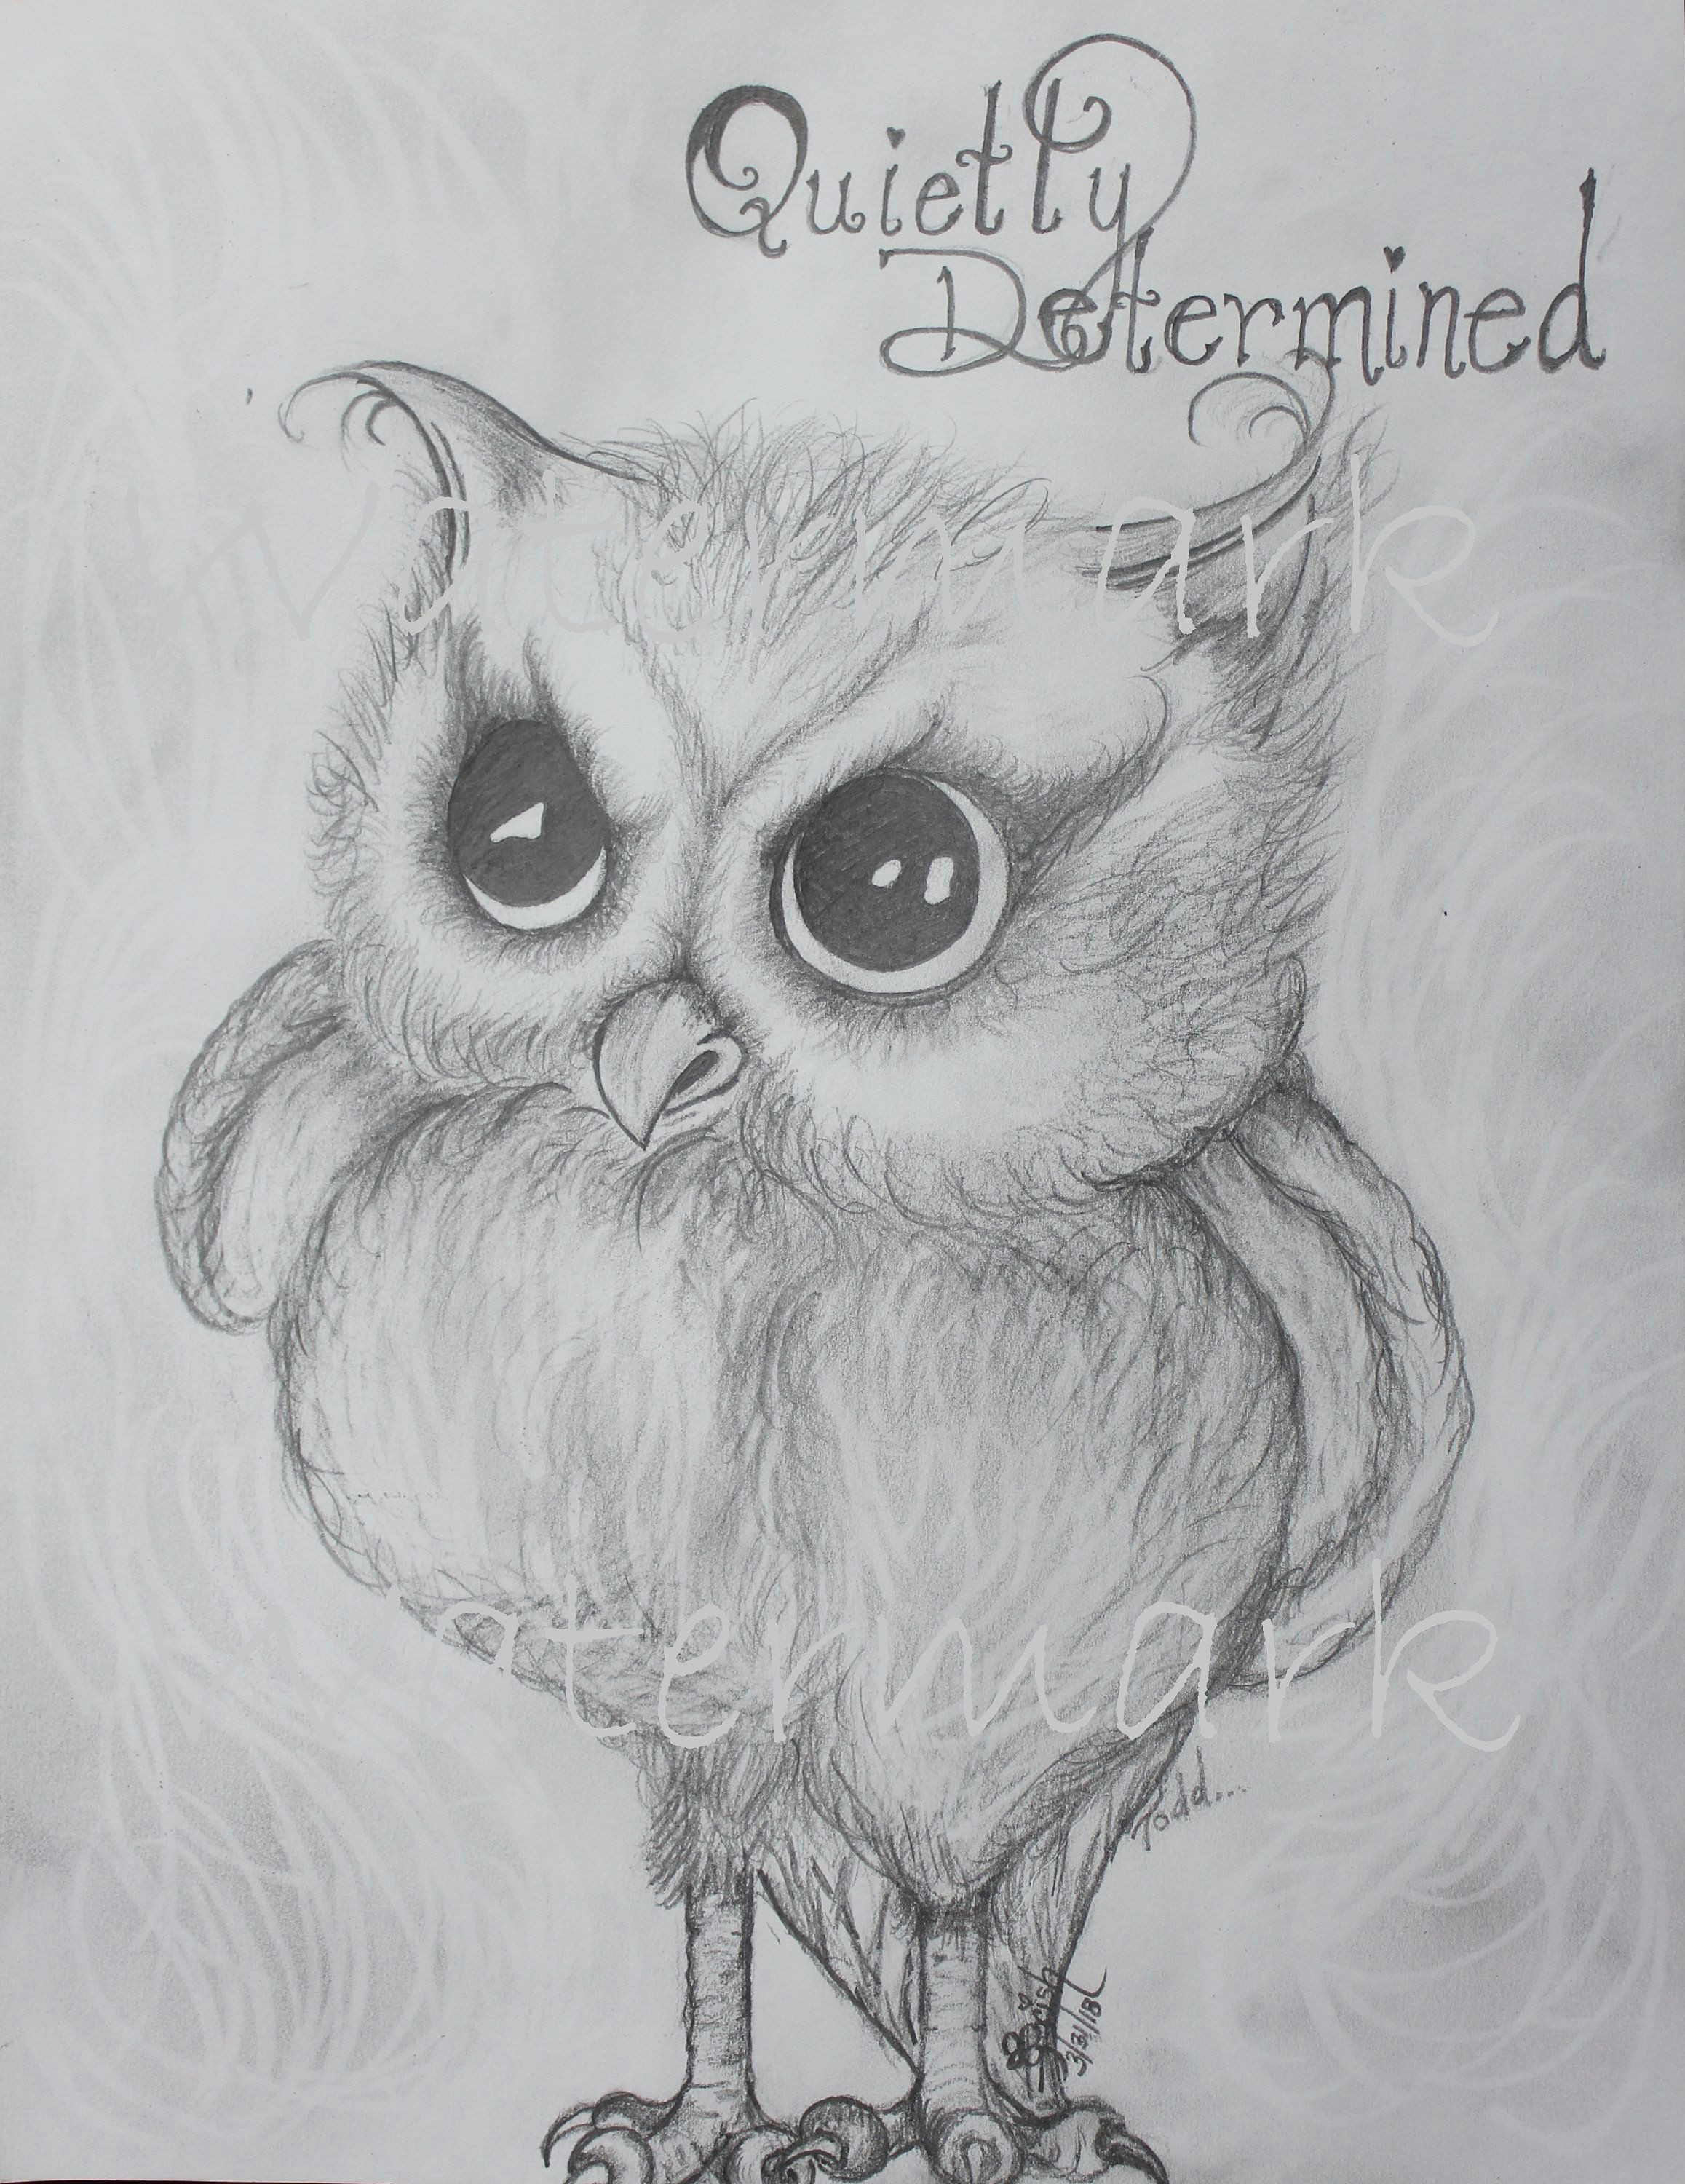 Drawing A Cute Owl Cute Quietly Determined Owl Cute Owl Print Determined Owl Sketch